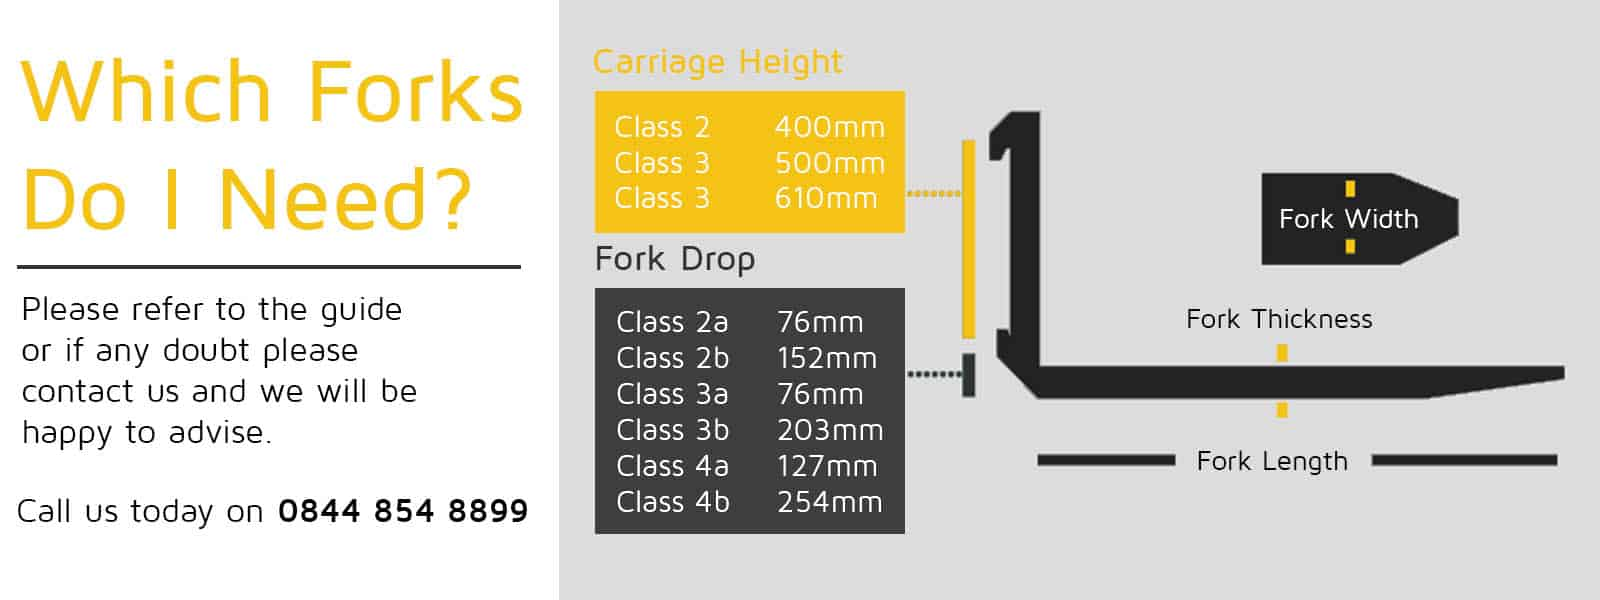 Forkway - Which Forks do I need?